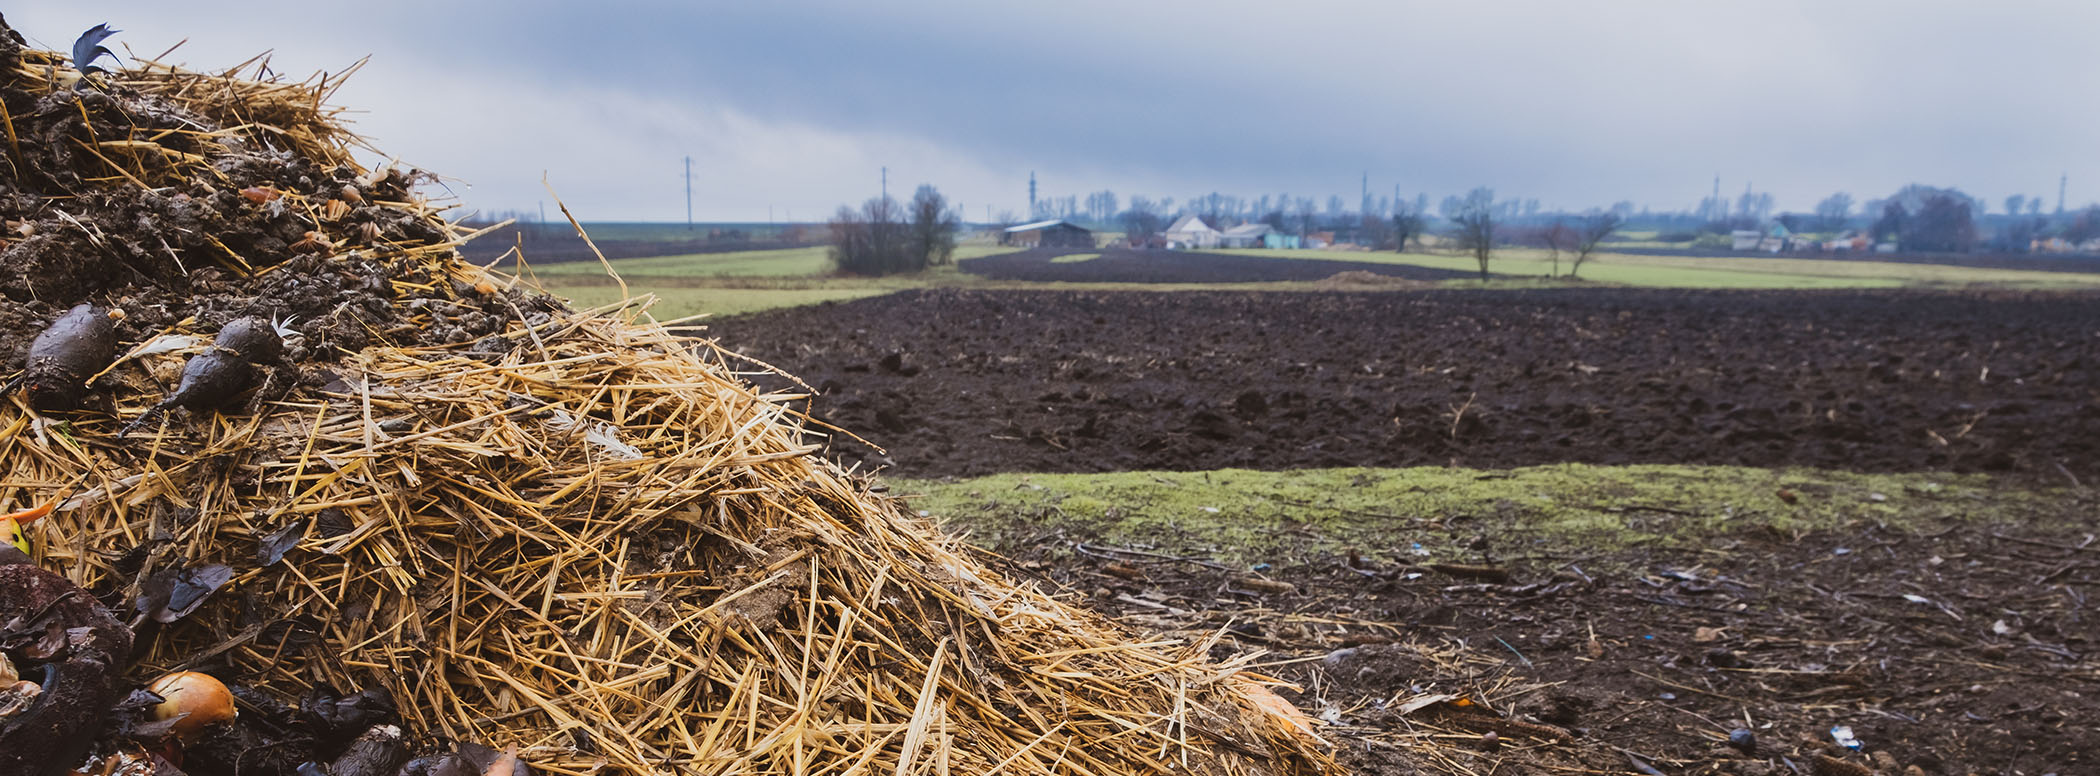 Assessing Composting Regulations across States for the Protection of Environmental and Human Health